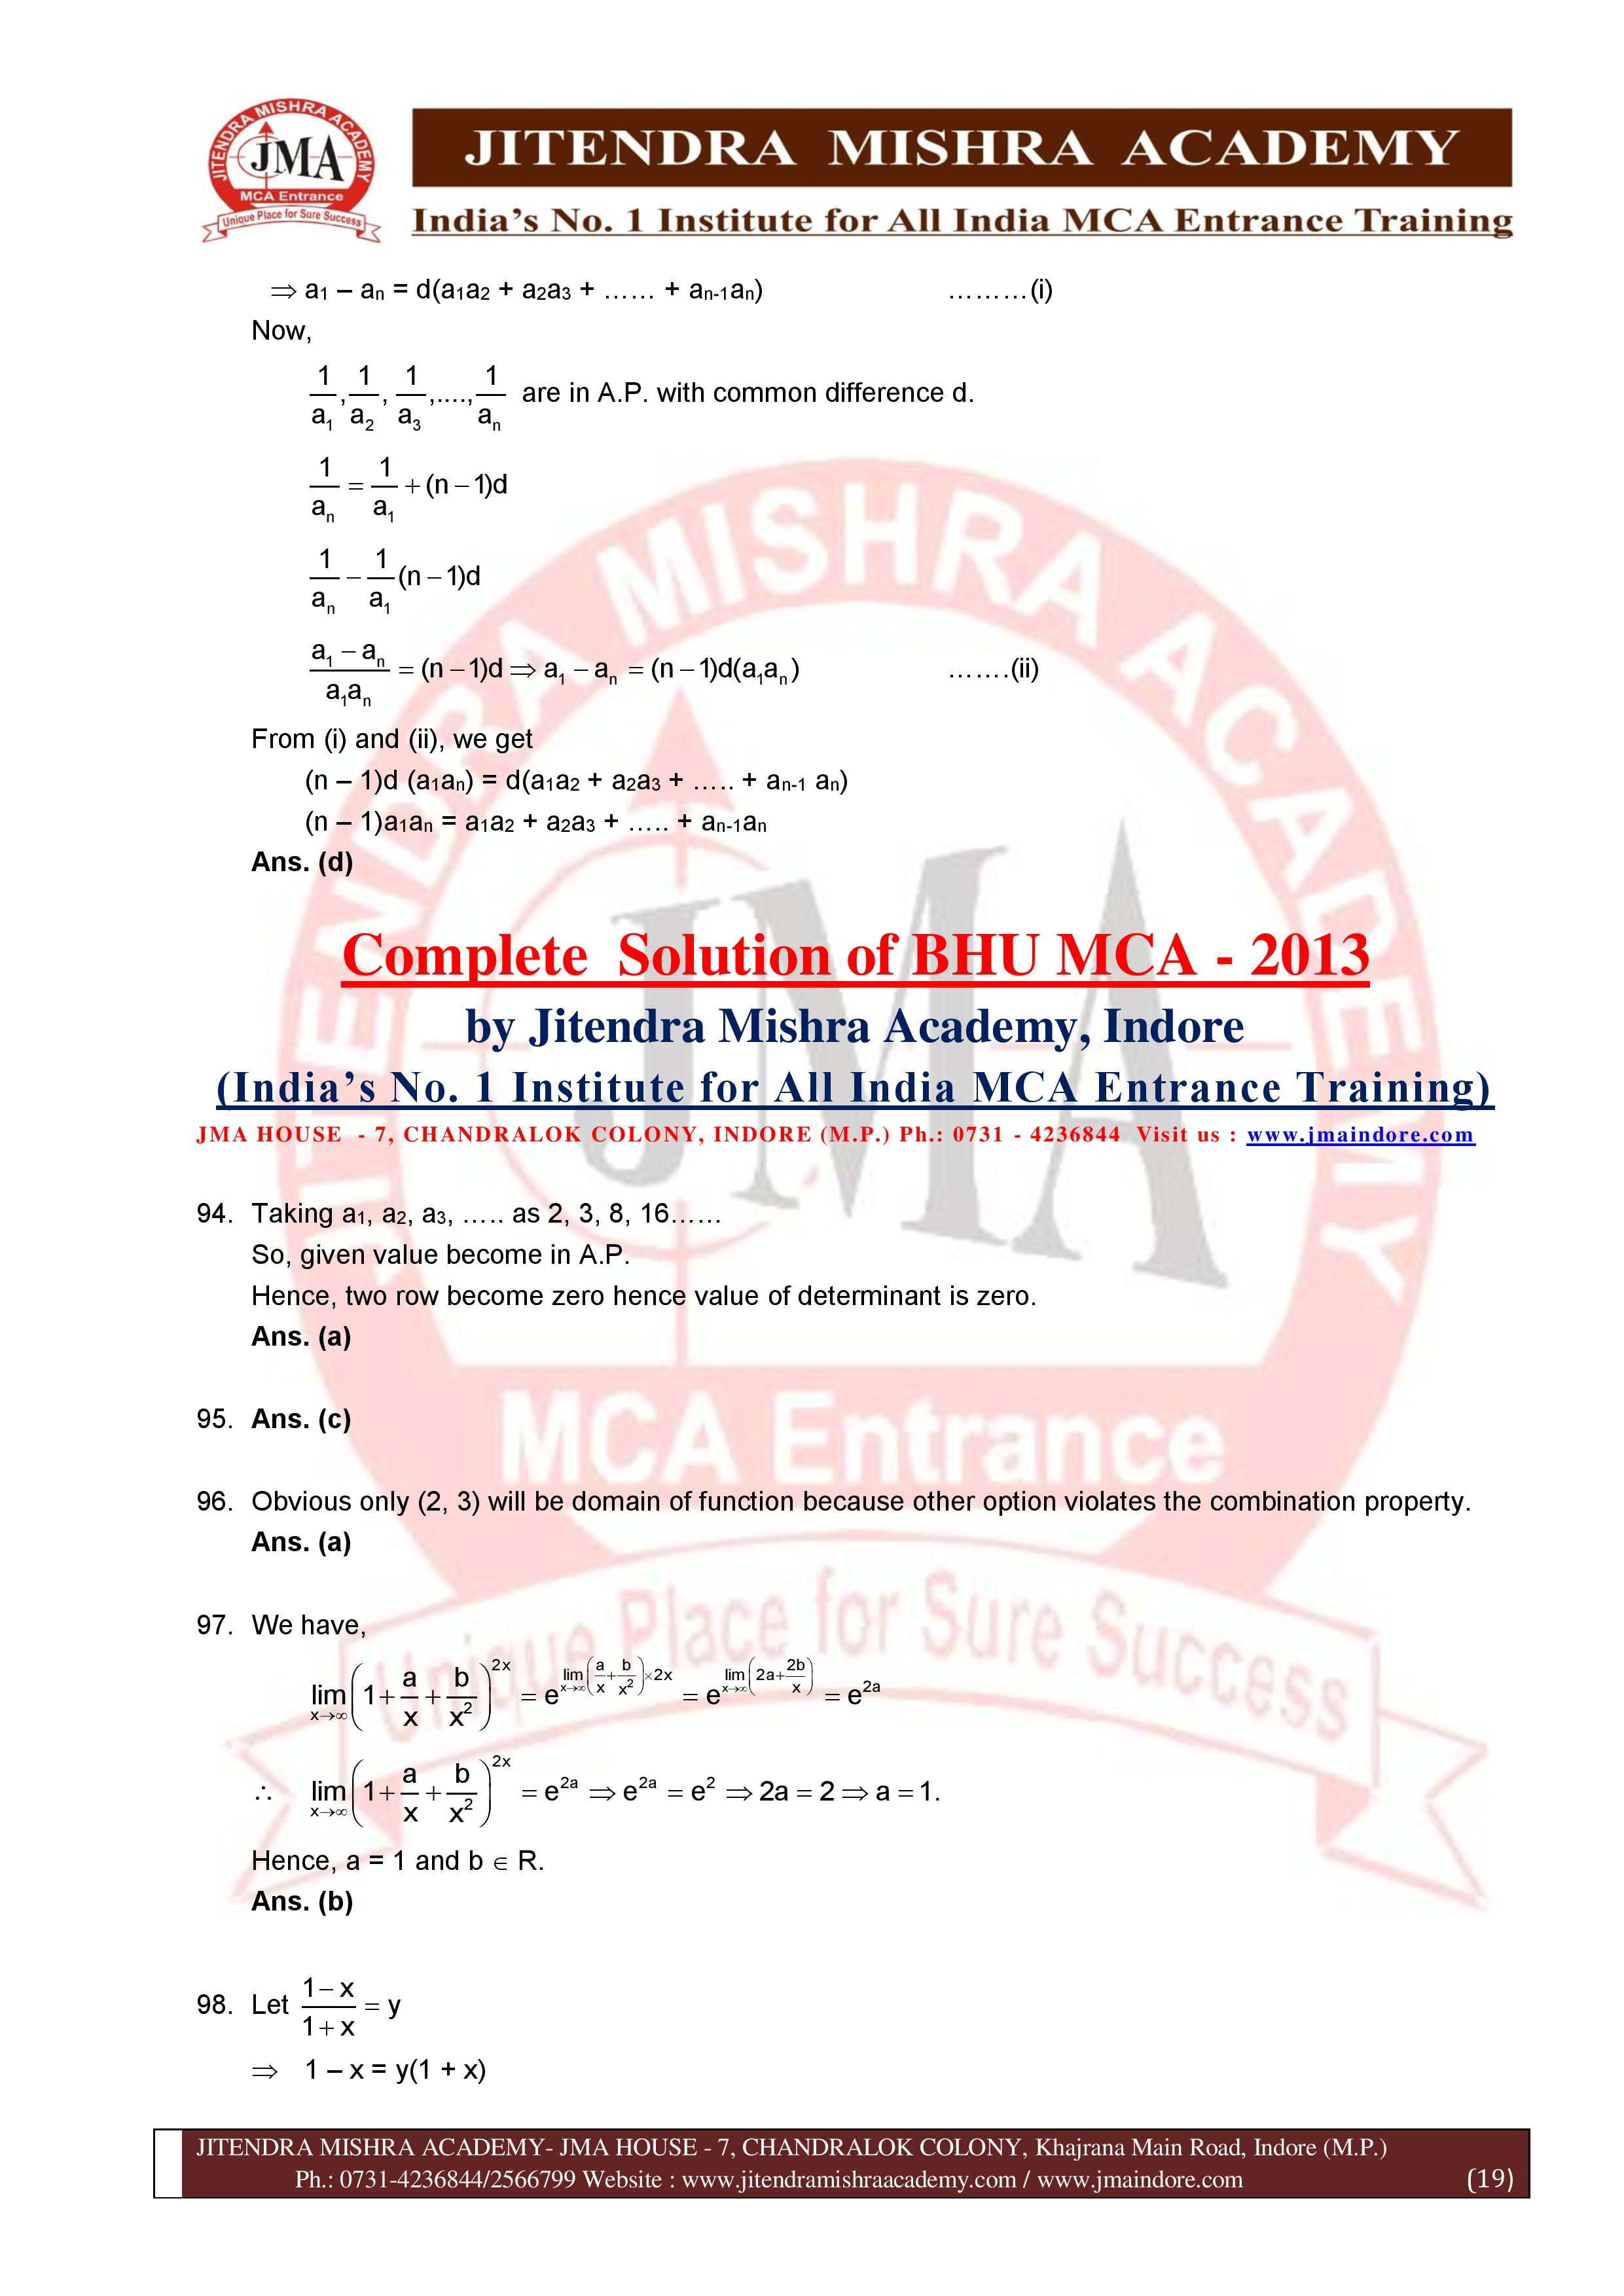 BHU 2013 SOLUTION (SET - 3) (06.07.16)-page-019